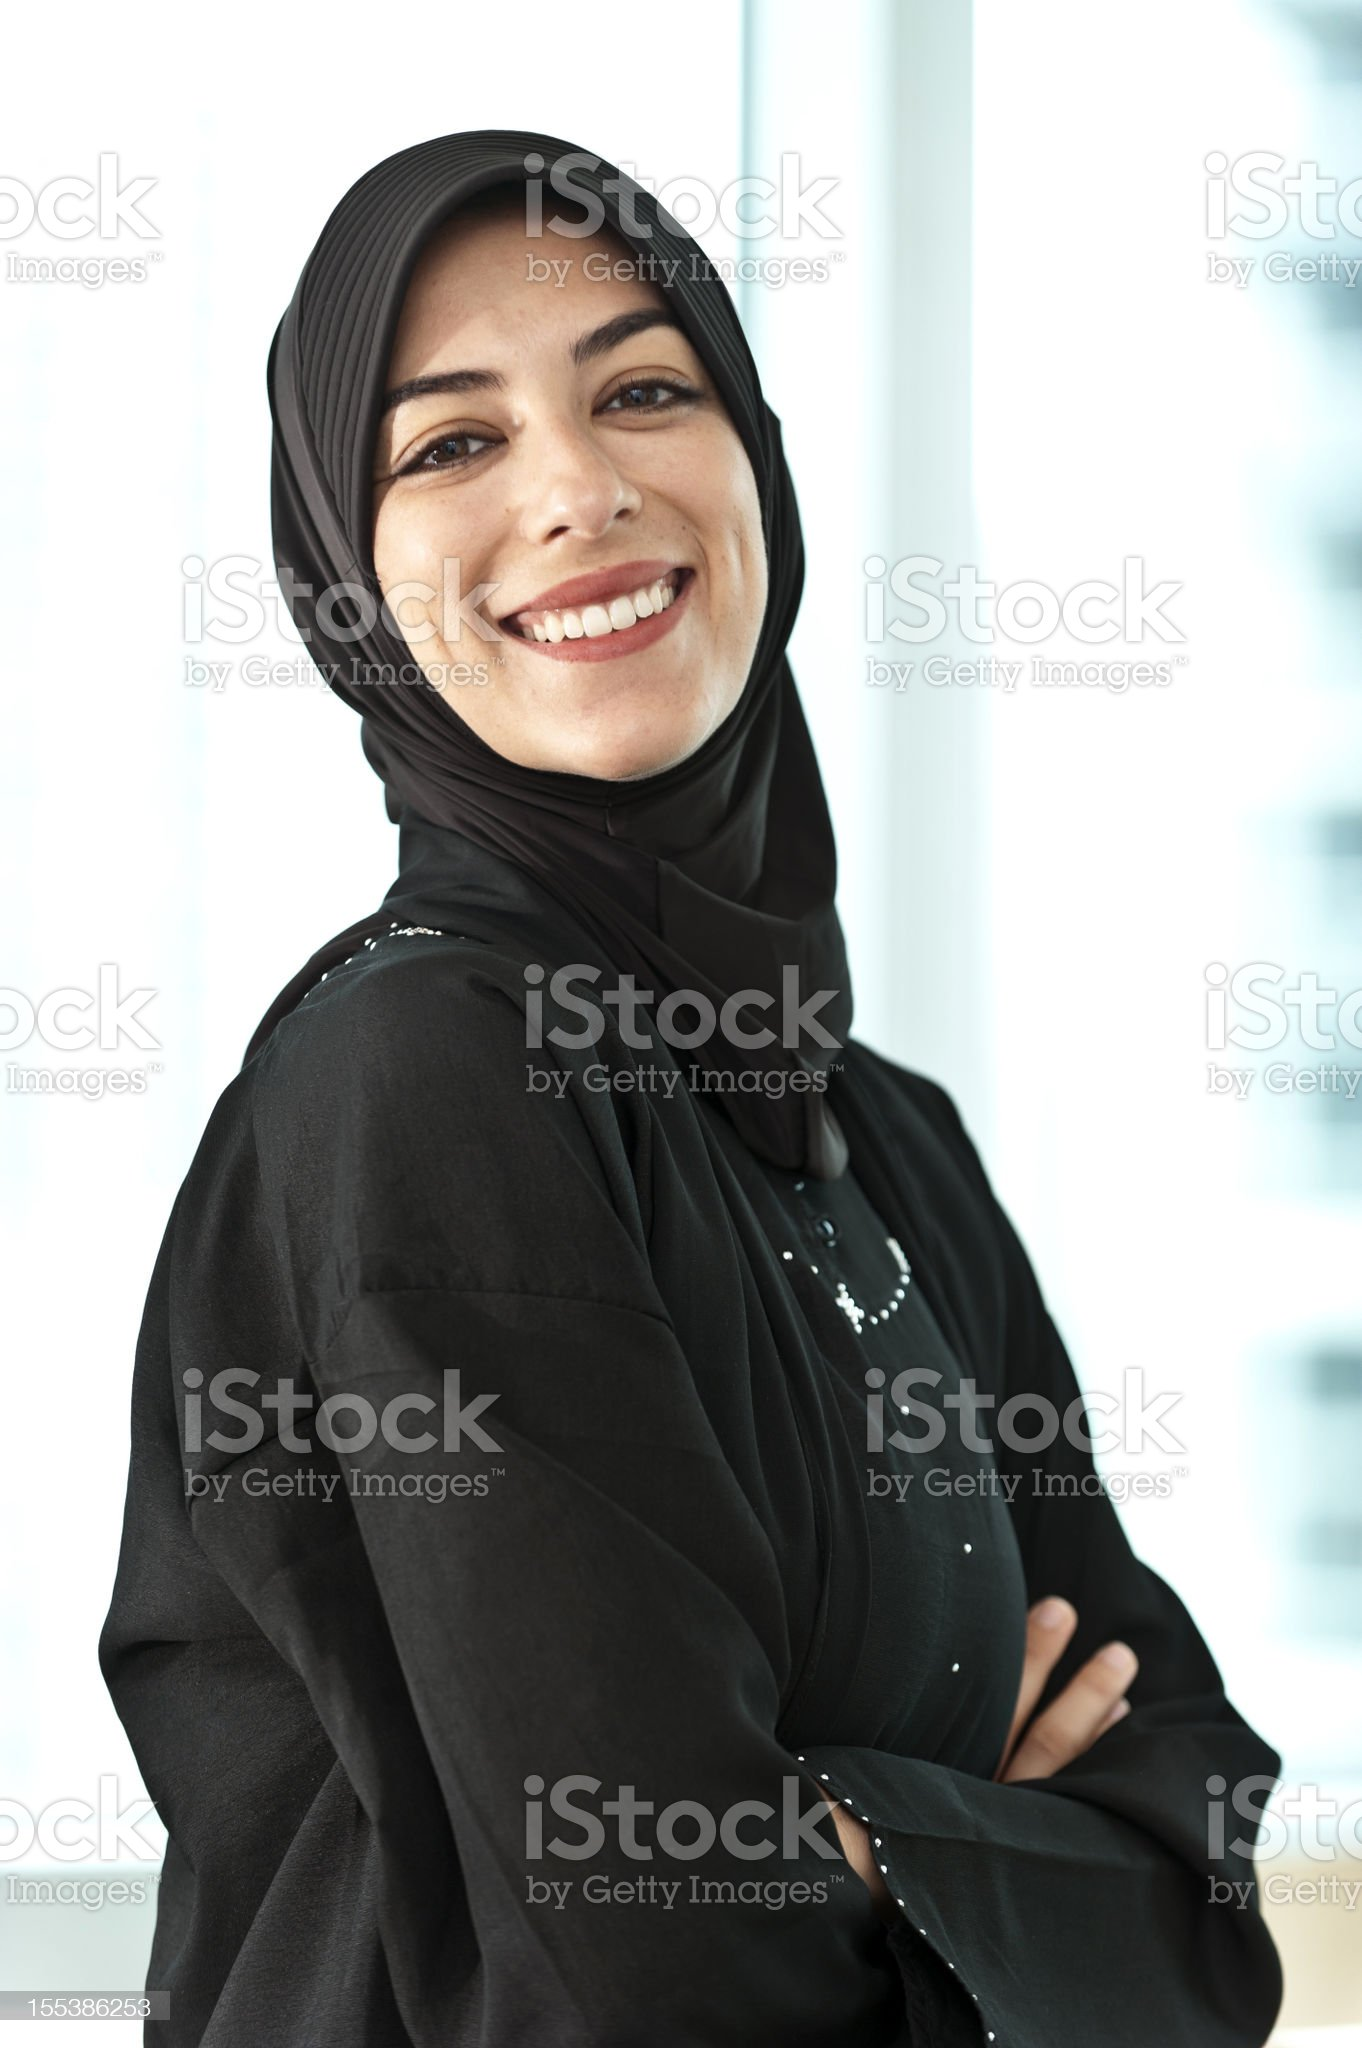 Real Muslim Young Woman royalty-free stock photo